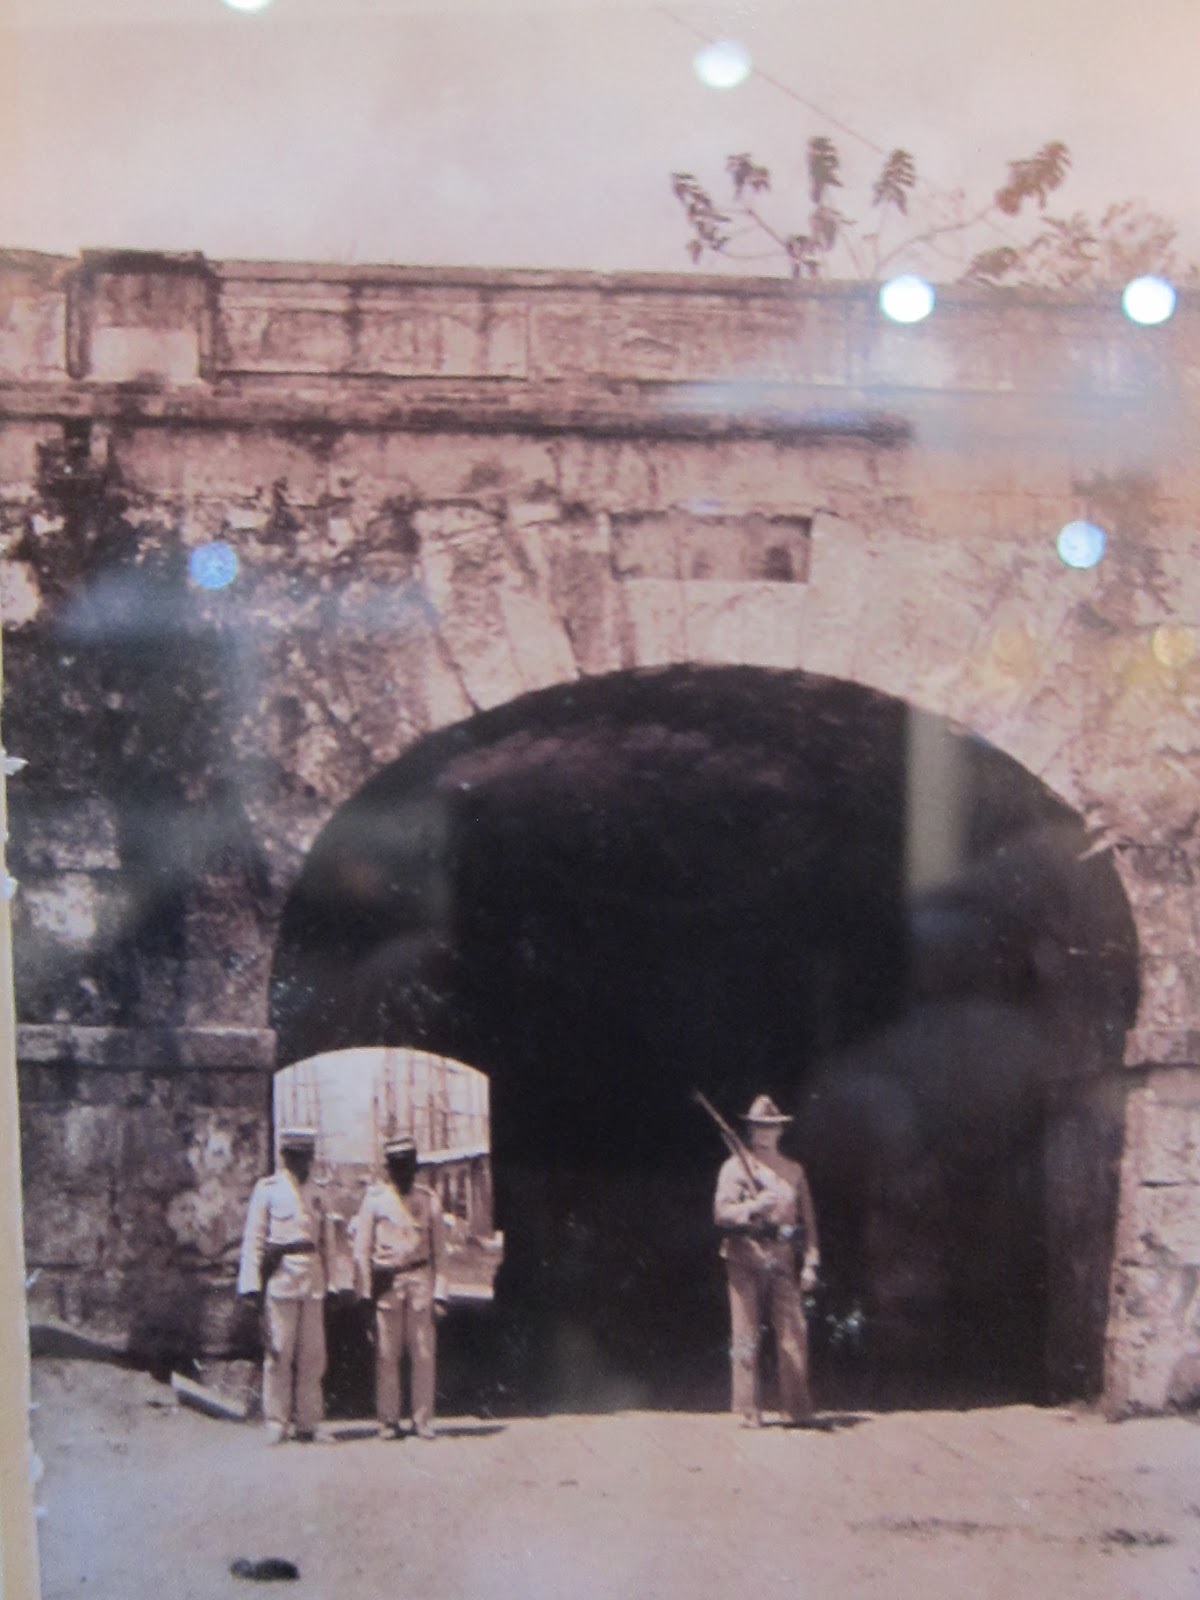 Pink Fox Patrol Beautiful Pre World War II Pictures at Quezon Resto in Fishe